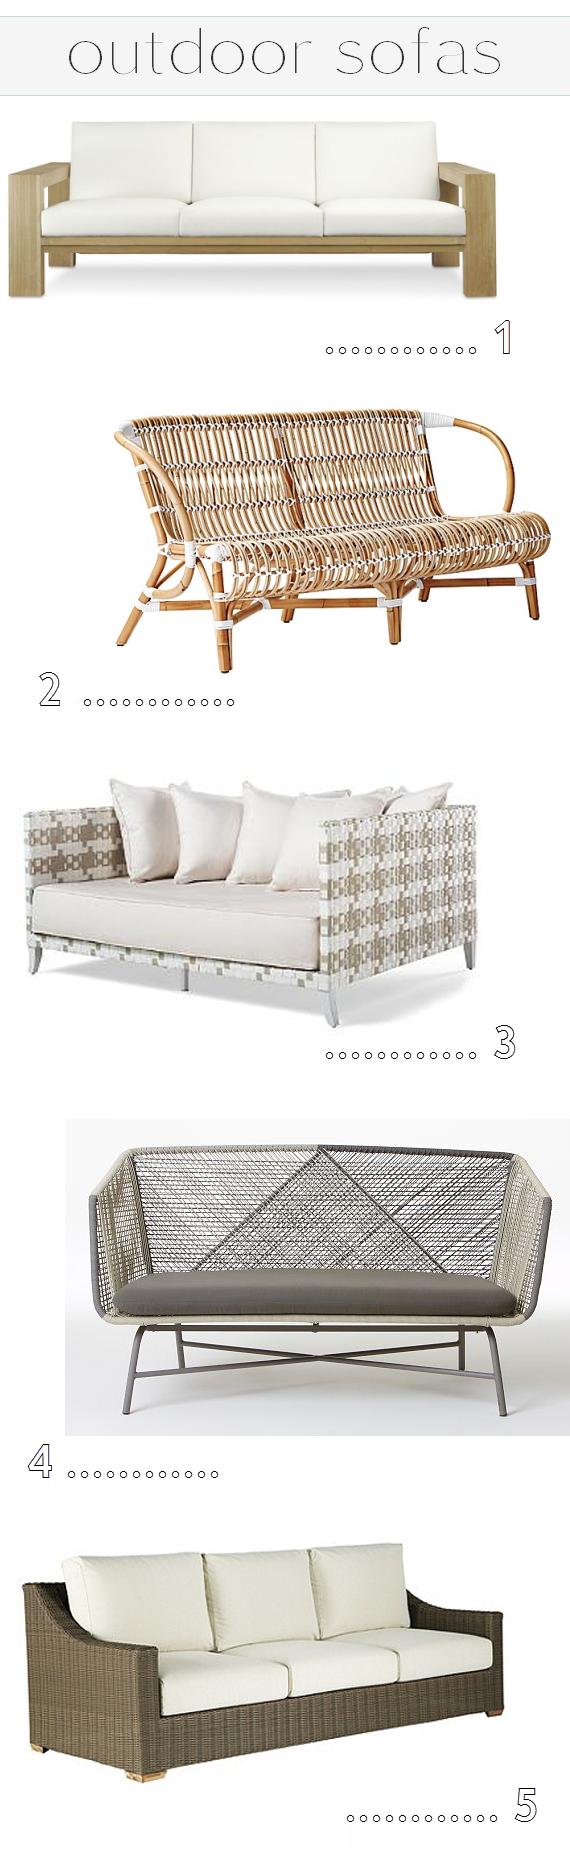 outdoor sofas - simplified bee